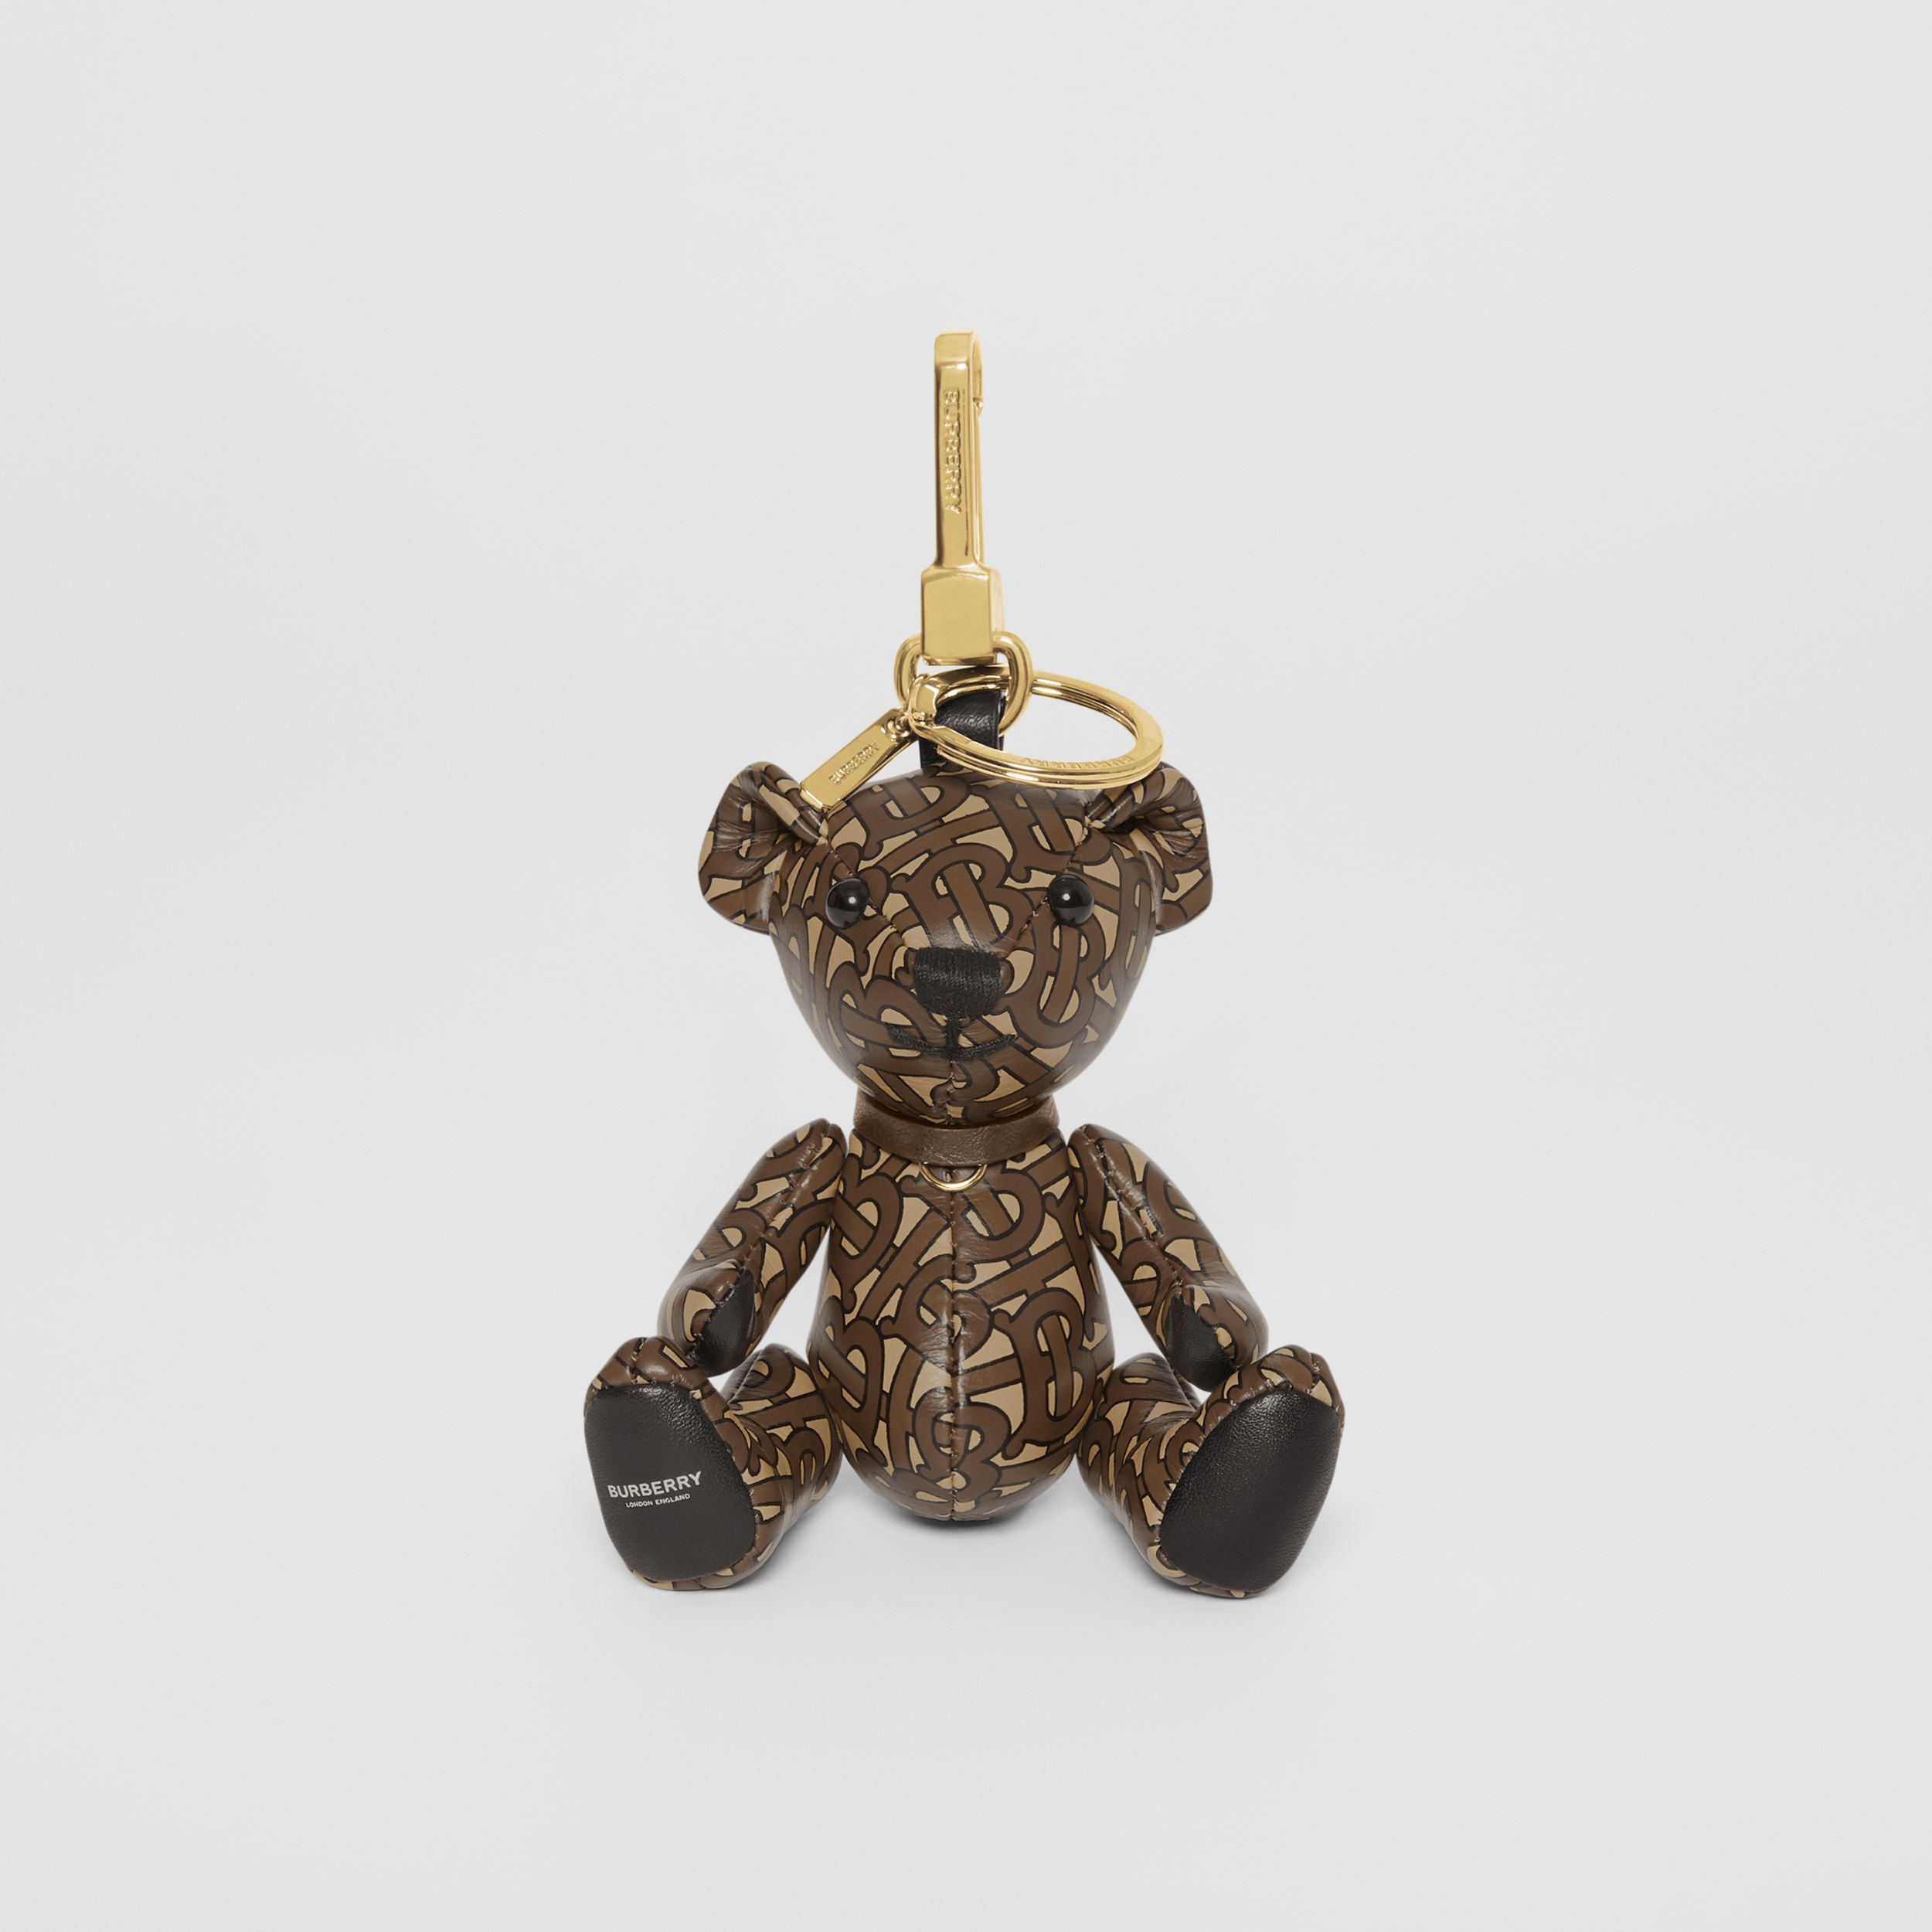 Thomas Bear Charm in Monogram Print Leather in Bridle Brown | Burberry - 3